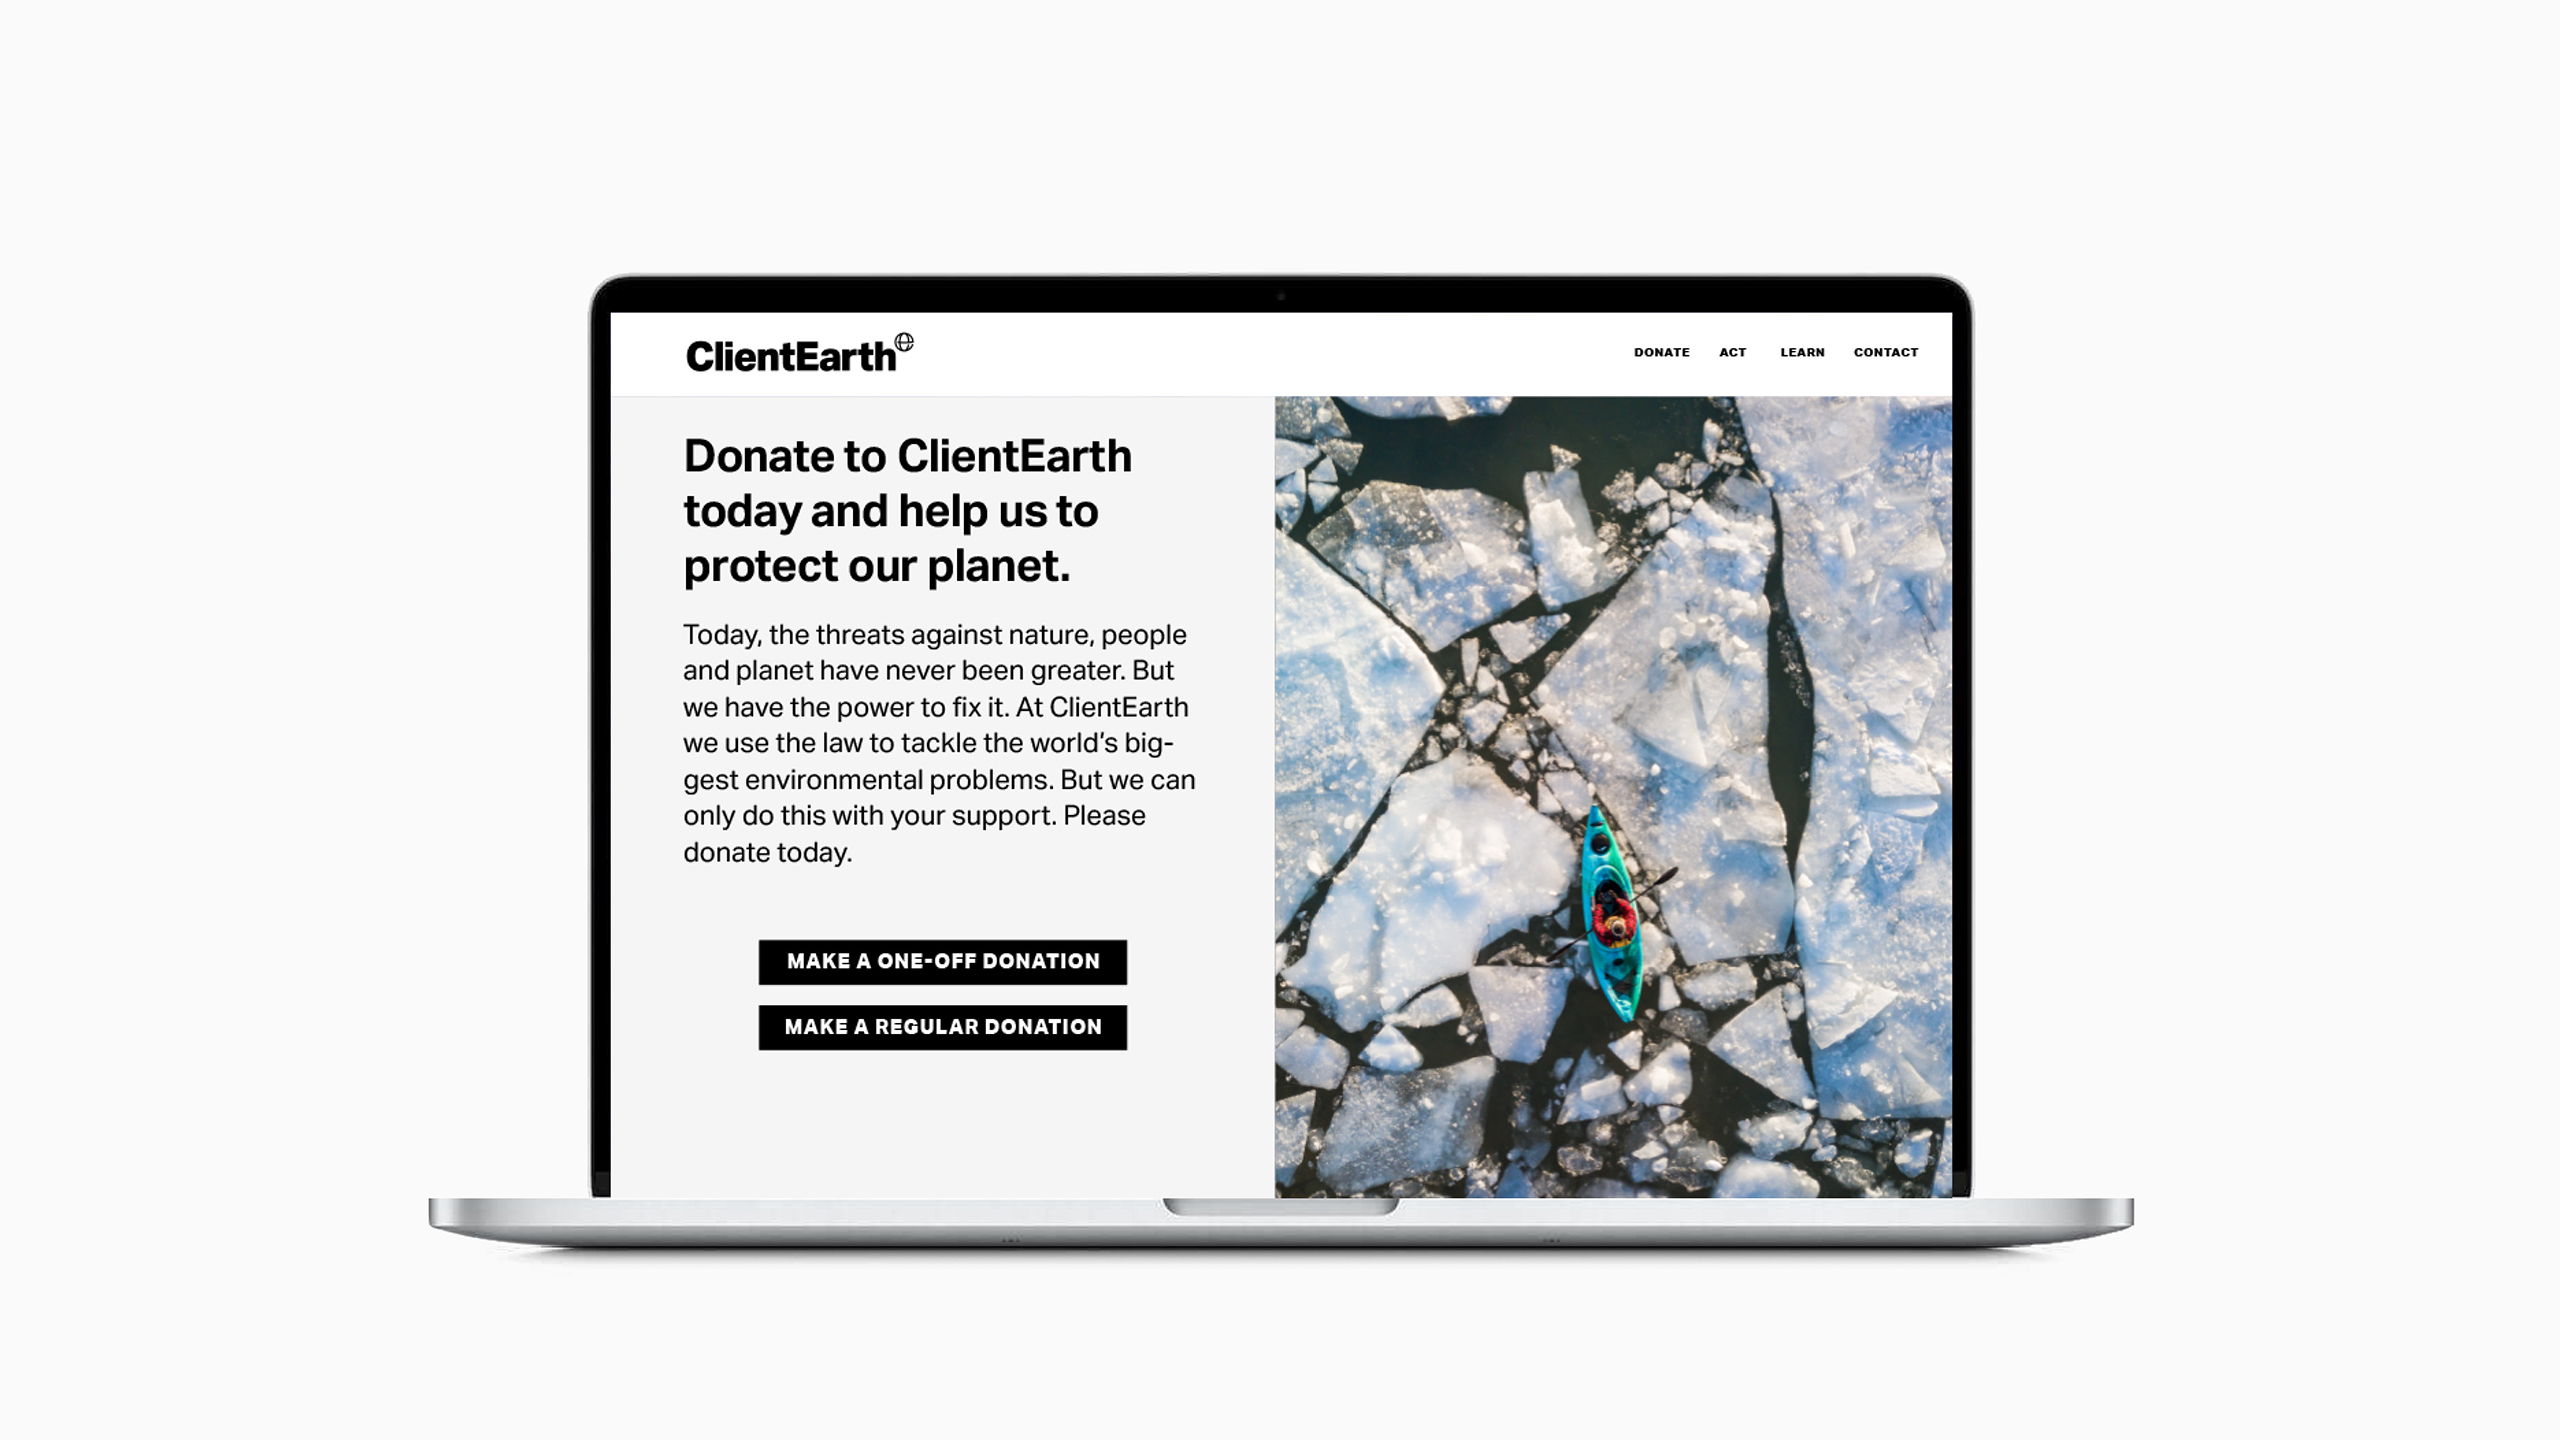 ClientEarth website. Strategy and creative direction by Apropos. Design and art direction by Erica Dorn. Strategy and copywriting by Clare Aitken.